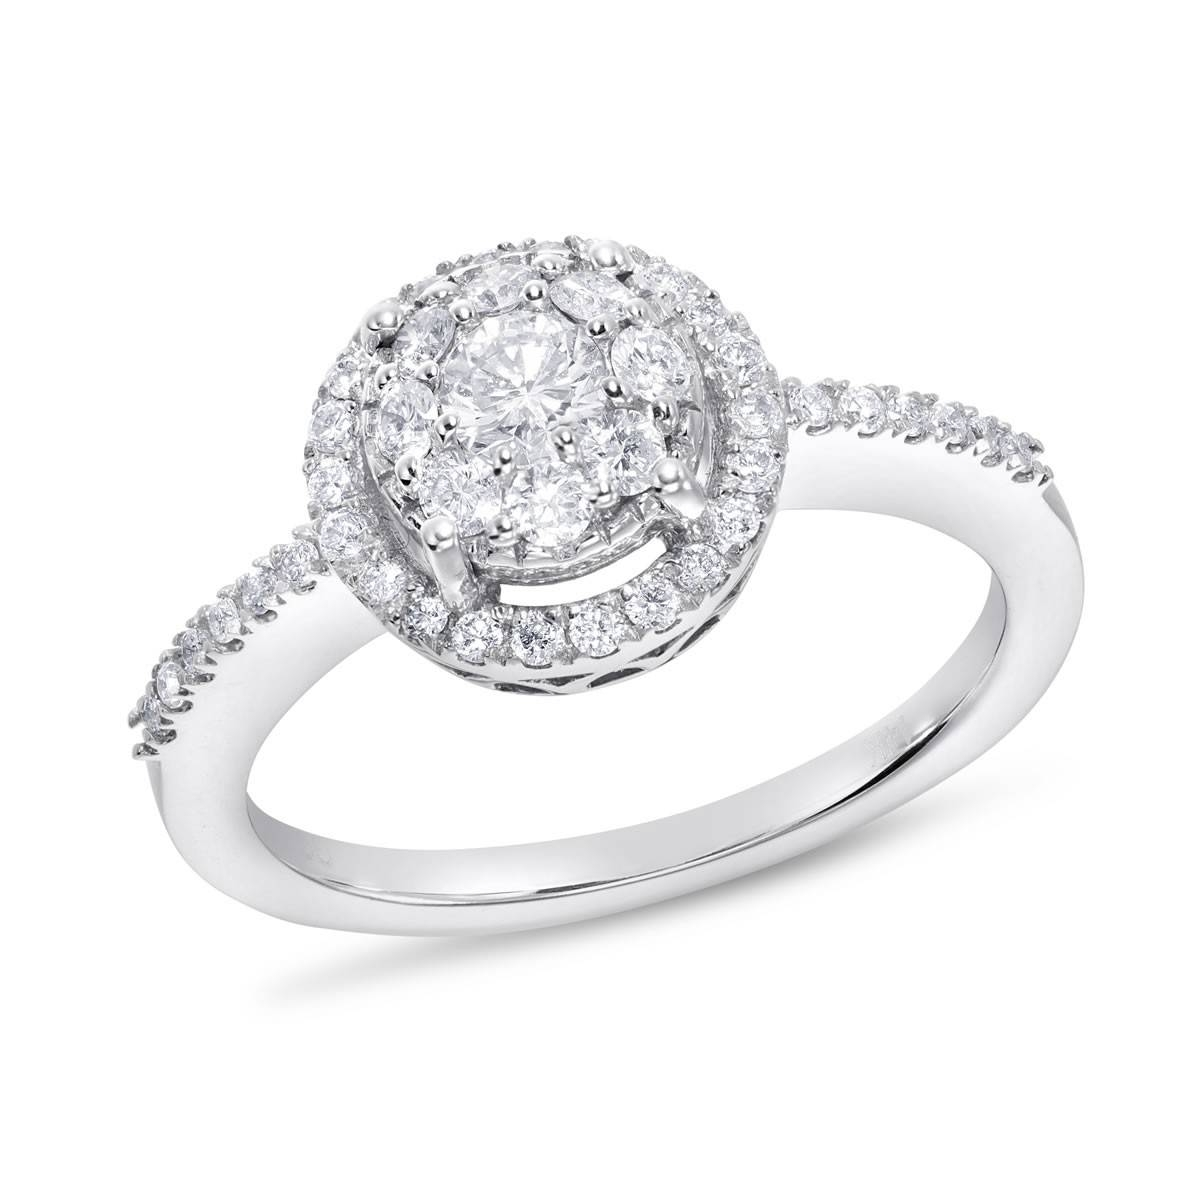 14K White Gold Si Round Diamond Engagement Ring, 5/8 Ctw | Samuels With 5 Diamond Engagement Rings (View 2 of 15)